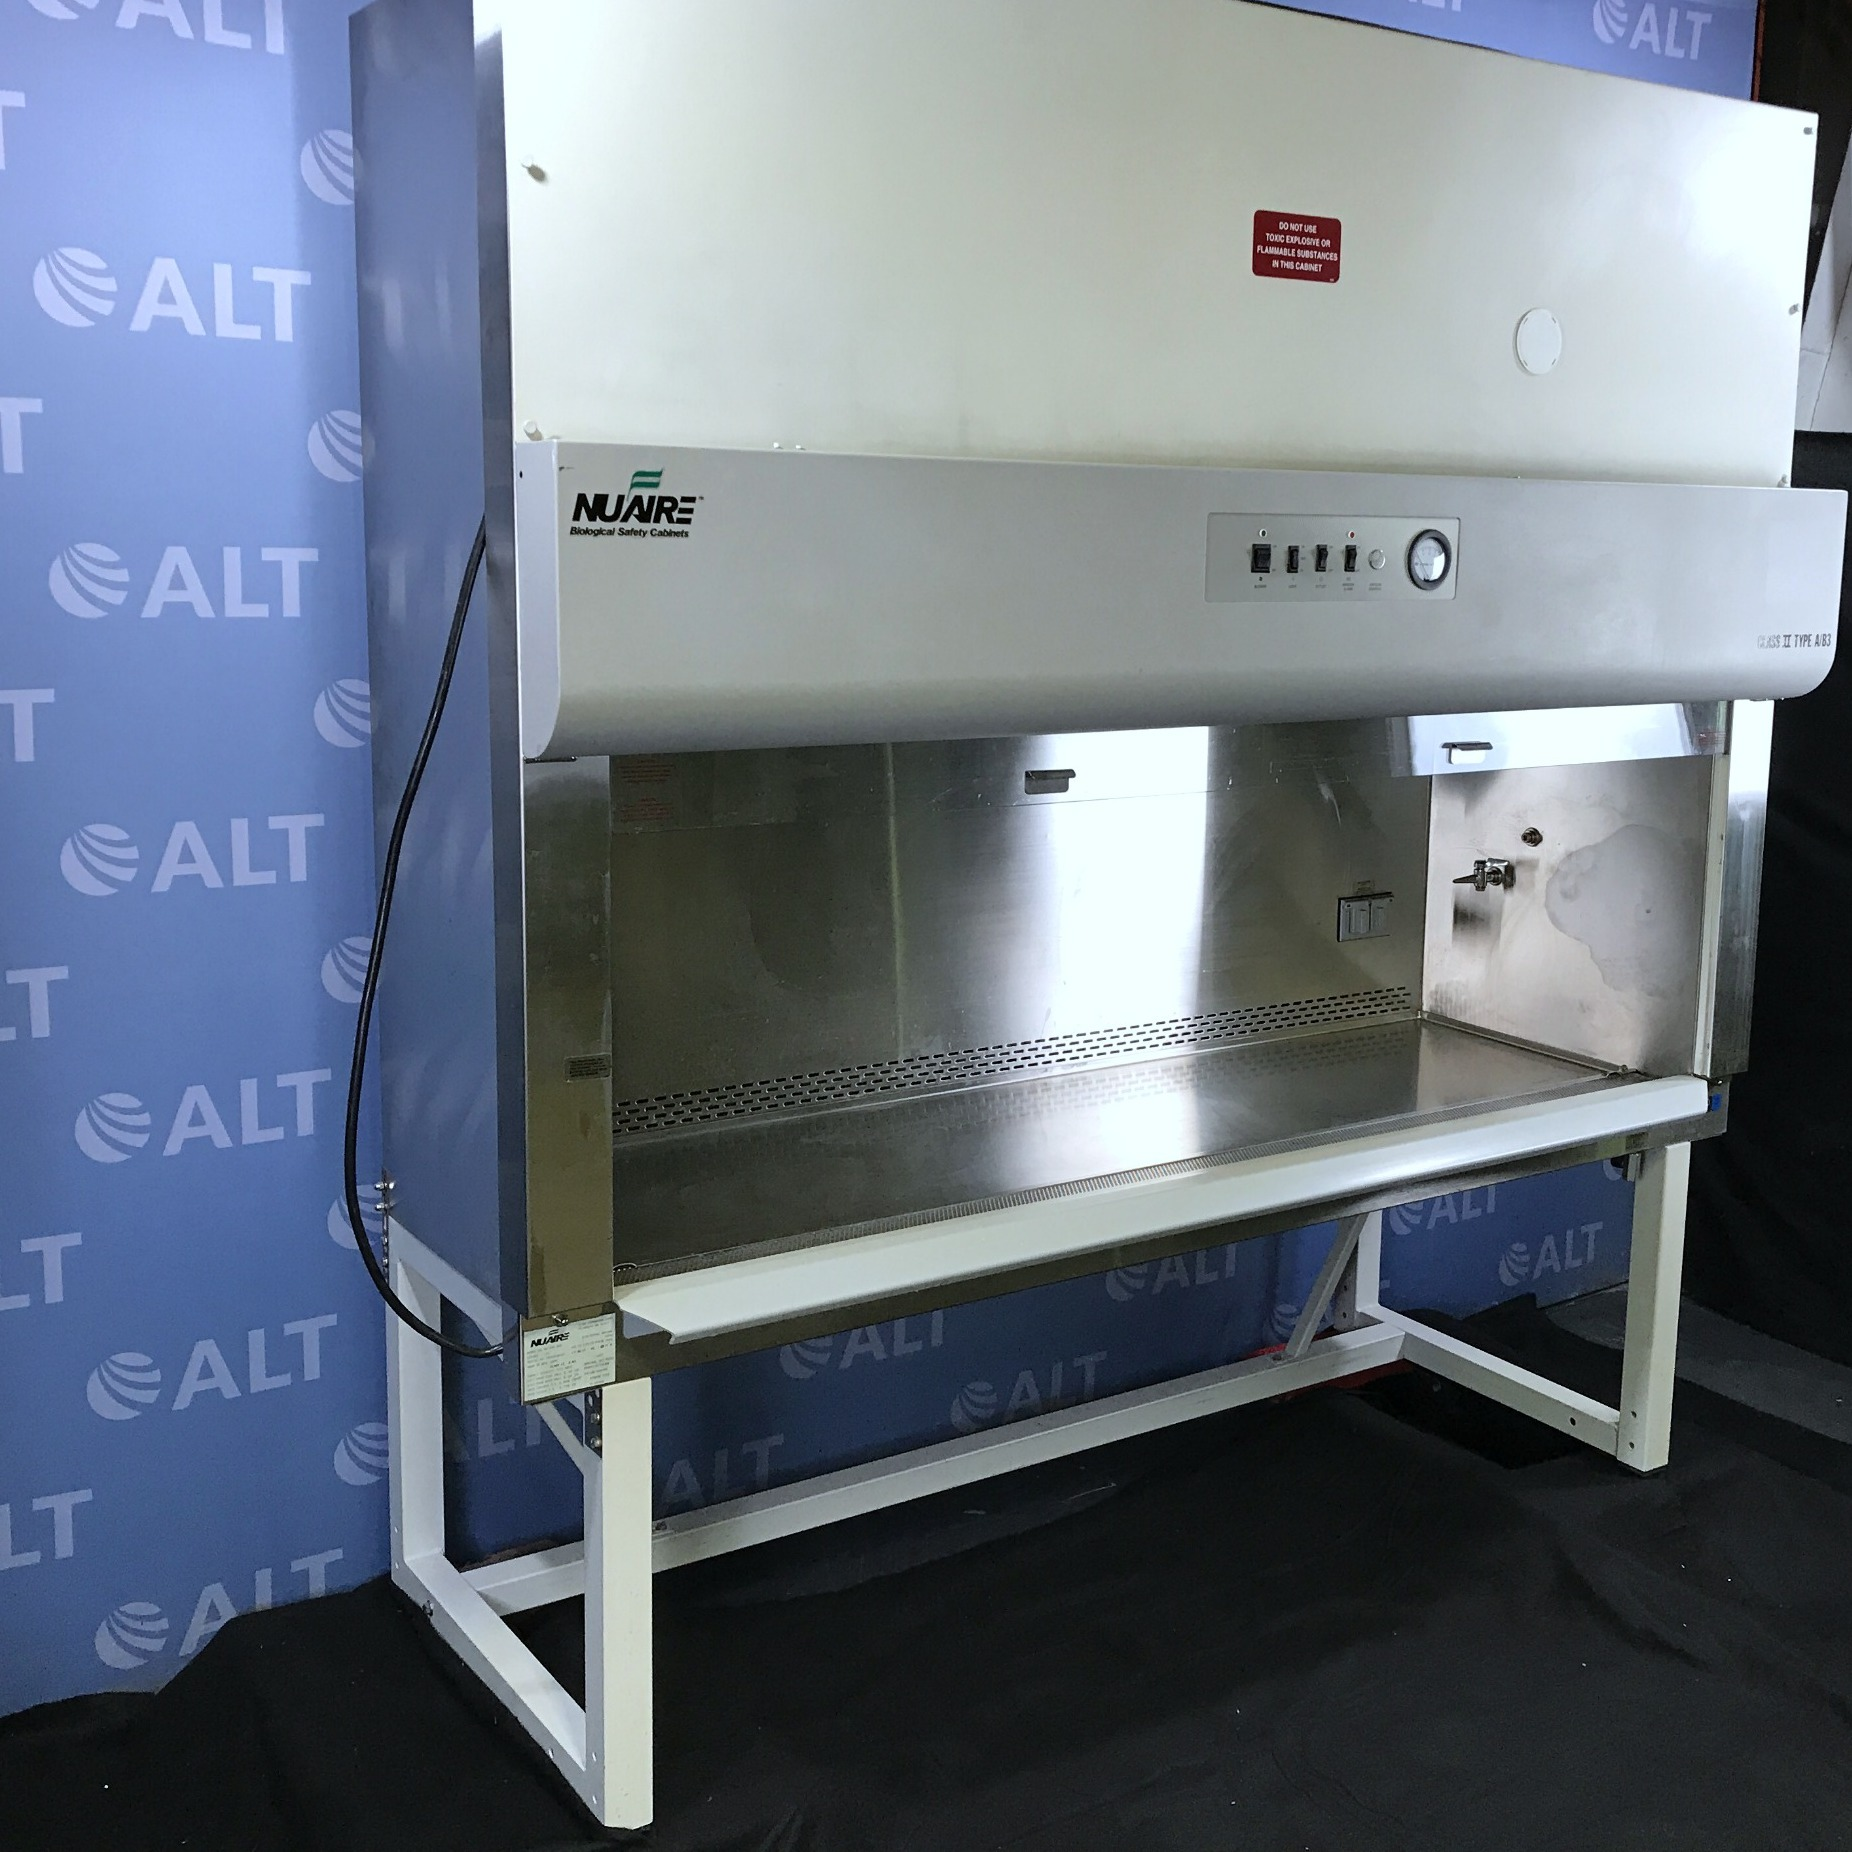 Nuaire NU-425-600 Series 24 Class II Type A/B3 Biological Safety Cabinet Hood Image